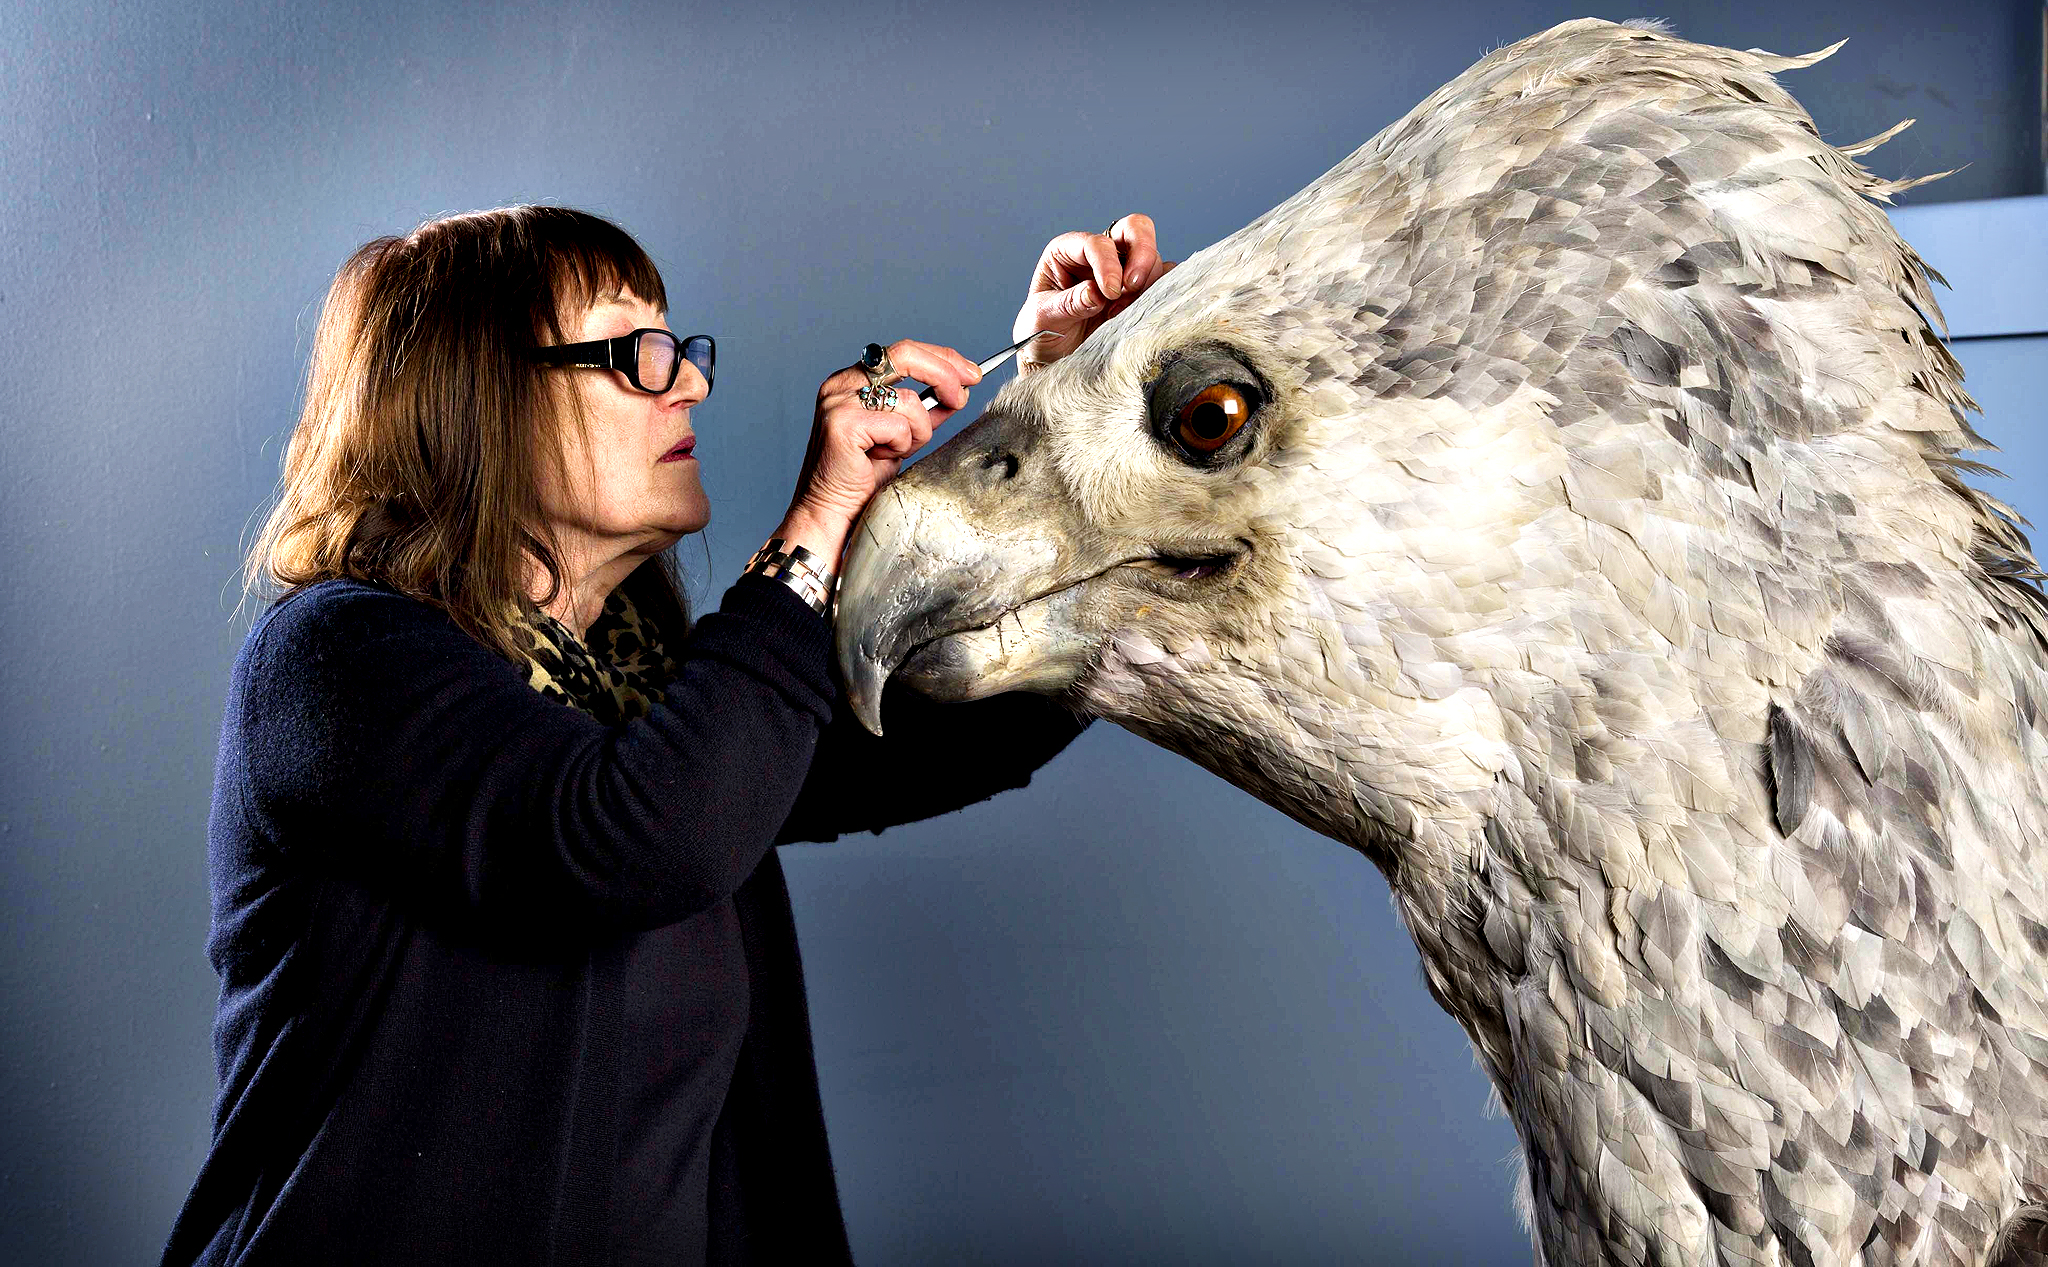 Buckbeak, a Hippogriff that lived with Rubeus Hagrid in the Harry Potter series, has his feathers preened and replenished by featherologist Val Jones, as he will feature in the the Feathers and Flight event at Warner Bros. Studio Tour London.This is the first make-over Buckbeak has received since the hugely popular Harry Potter film series was made. His intricate coat is created from thousands of individually airbrushed chicken and goose feathers that Val will carefully clean and replenish in time for the start of Feathers and Flight. Val will lead an expert team to demonstrate the techniques that made winged wonders such as Buckbeak and Fawkes the Phoenix a reality on screen.